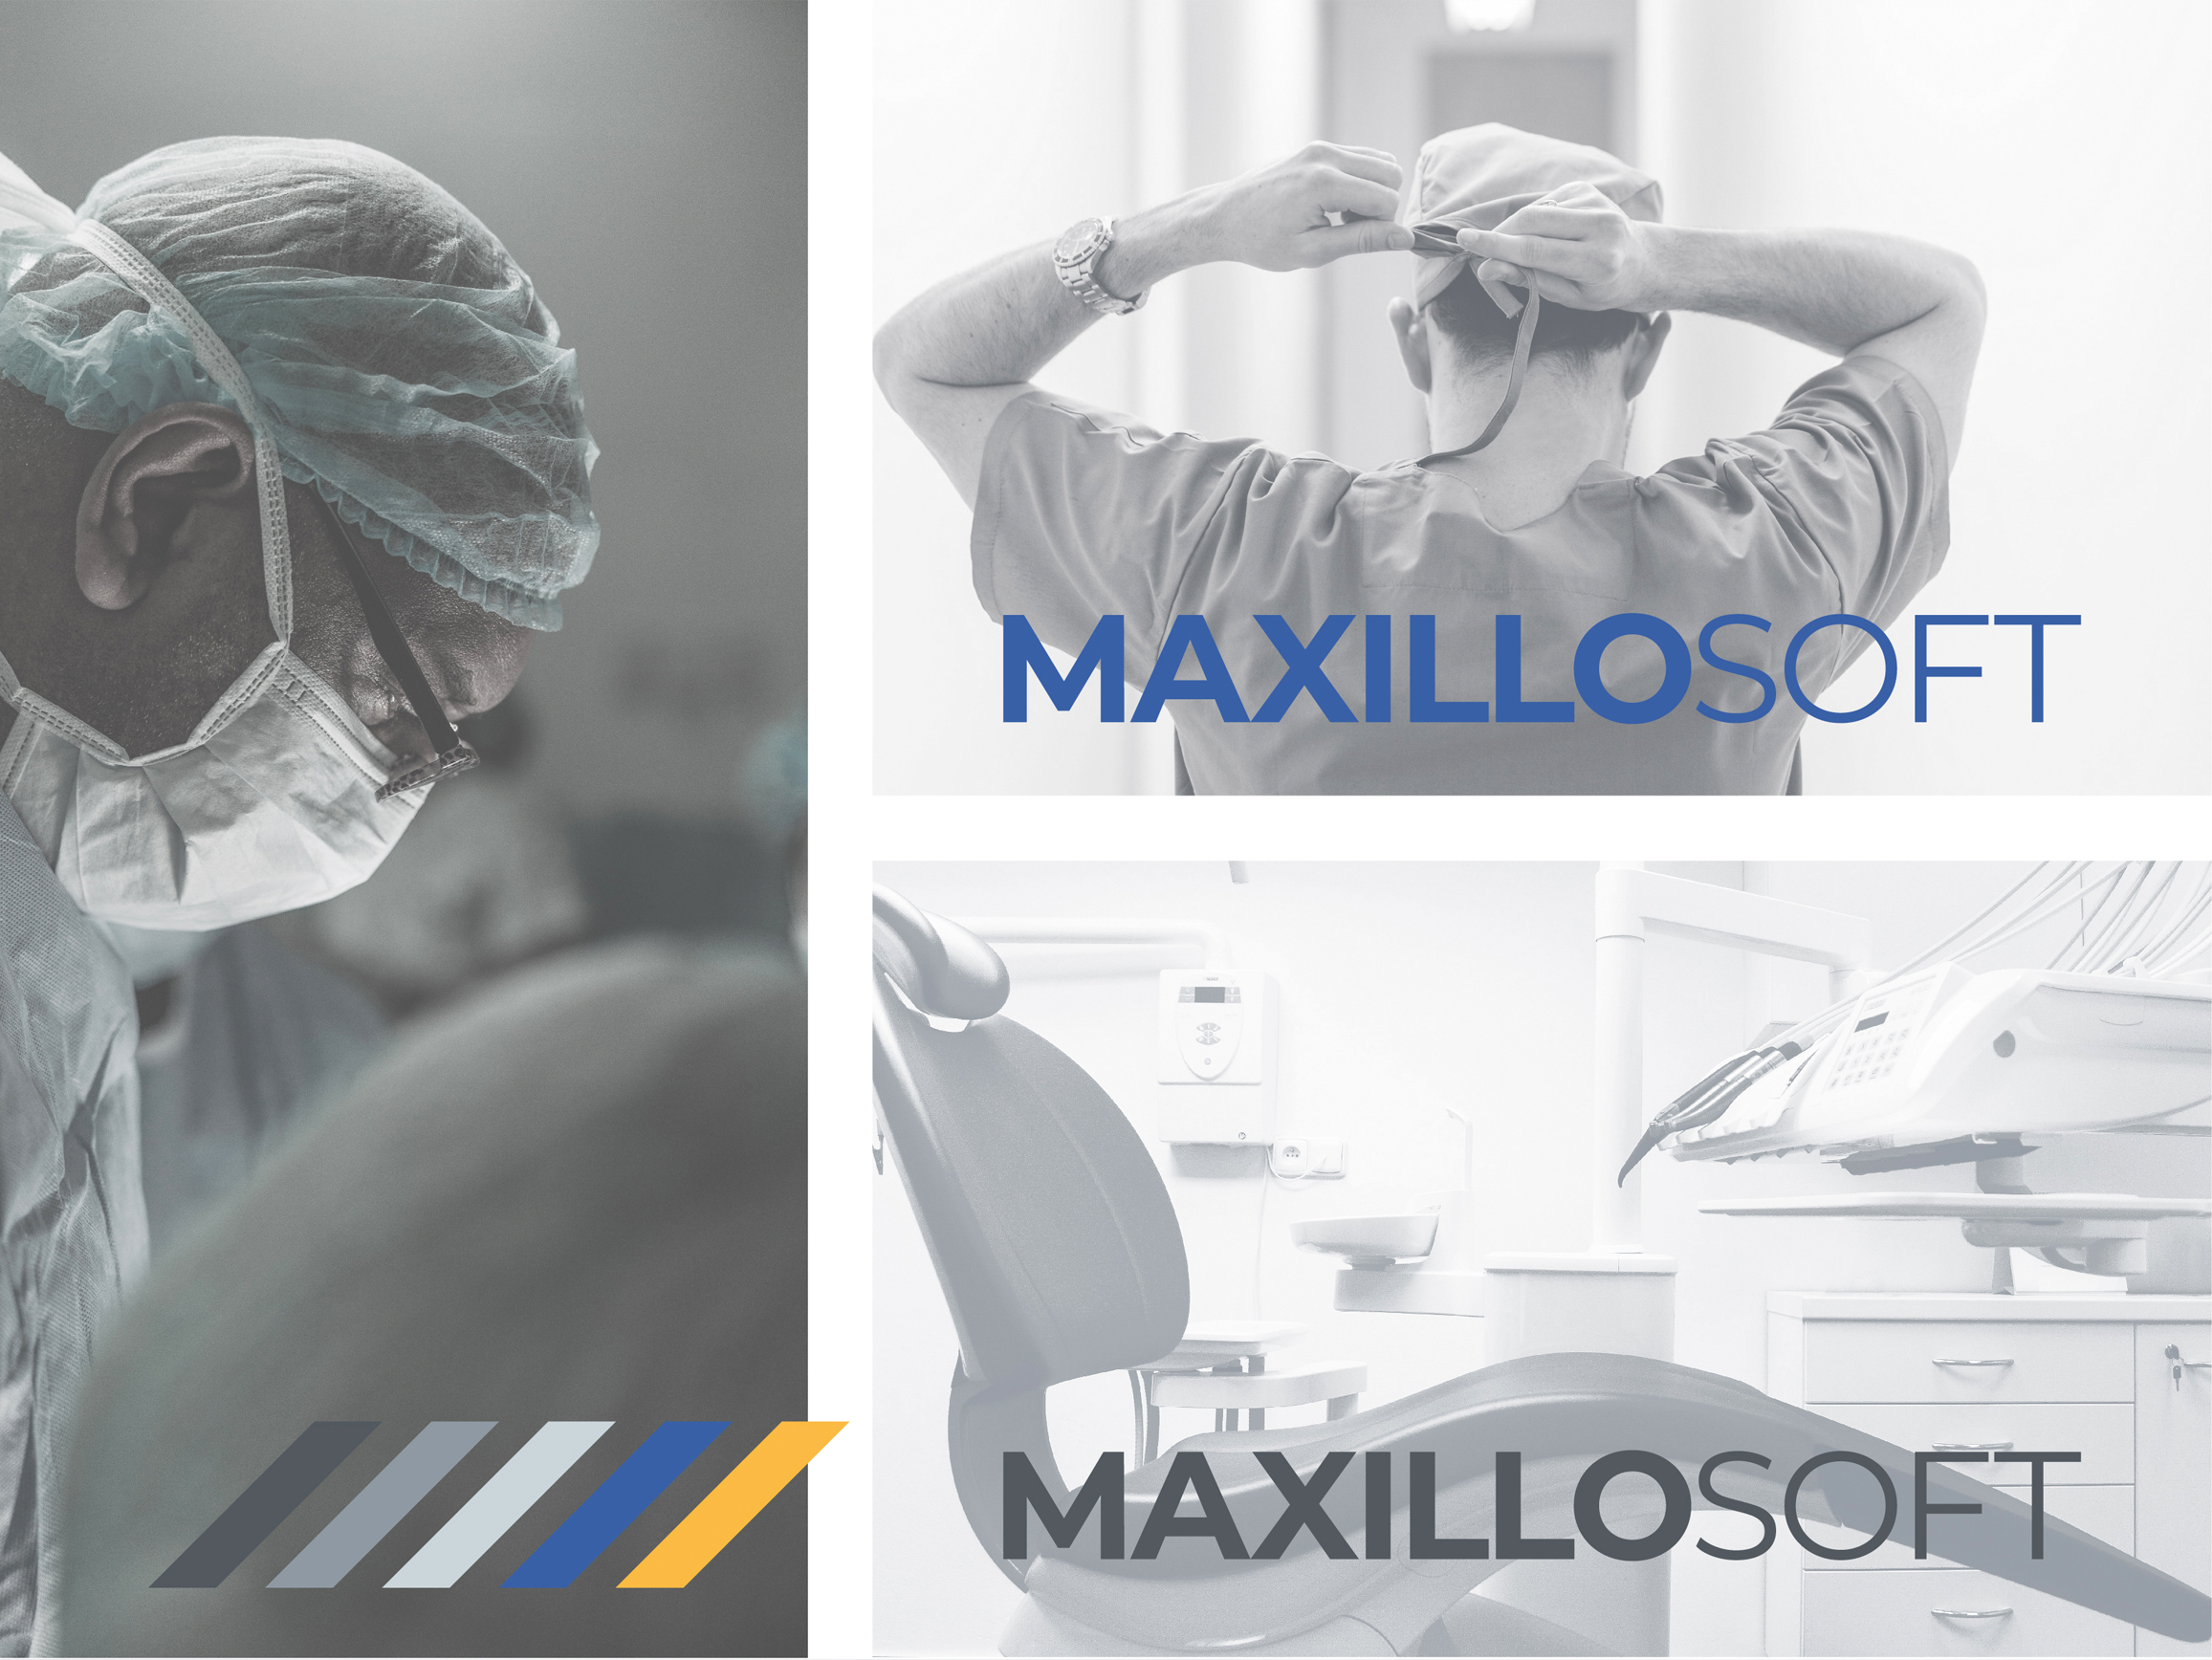 https://trpeskidesign.com/project/maxillosoft/